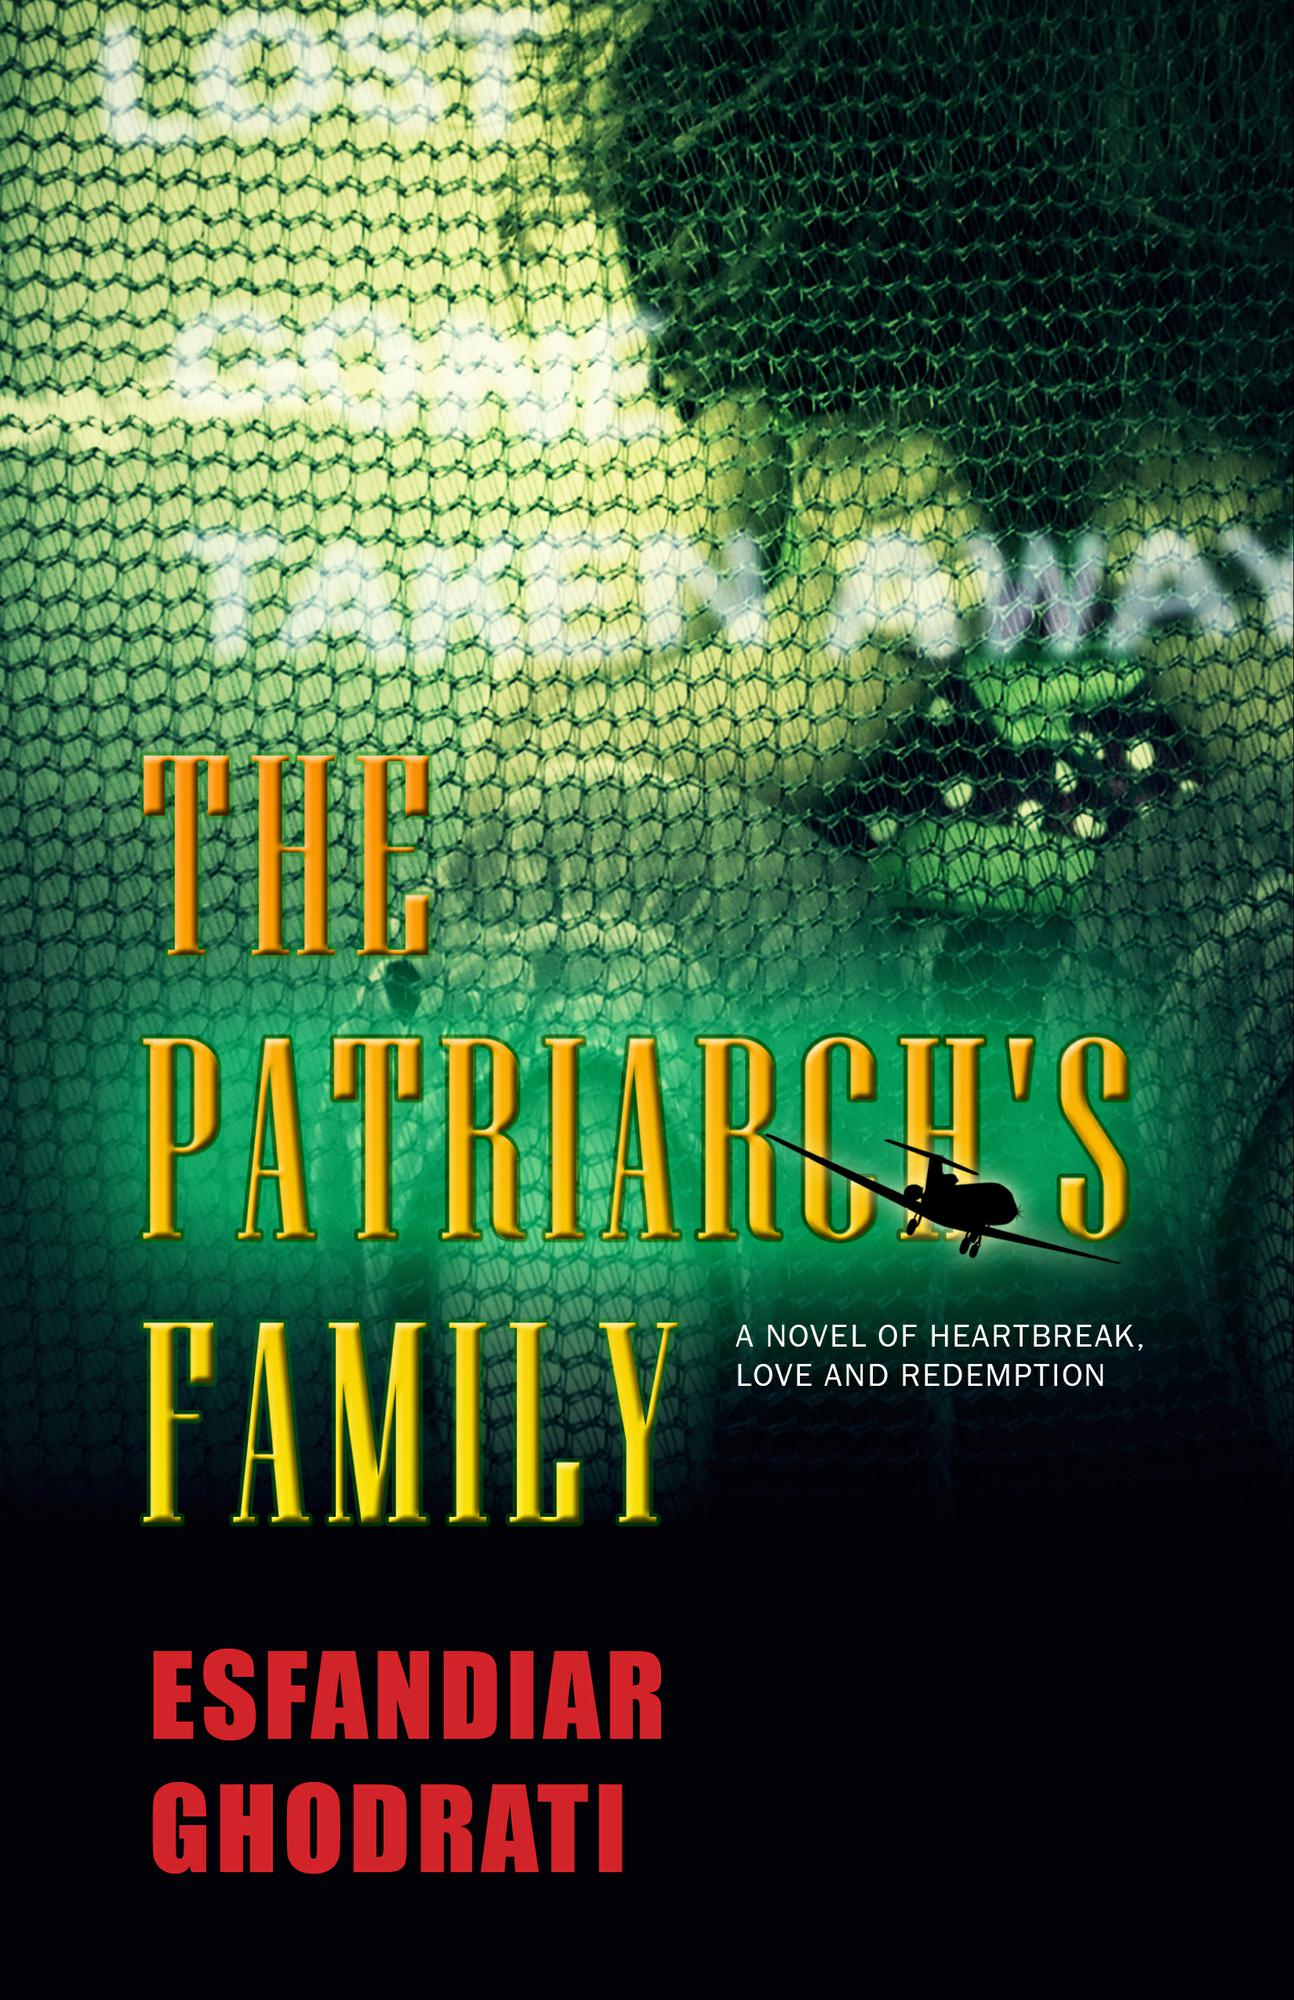 The Patriarch's Family: A Novel of Heartbreak, Love and Redemption By: Esfandiar Ghodrati, Structural Engineer